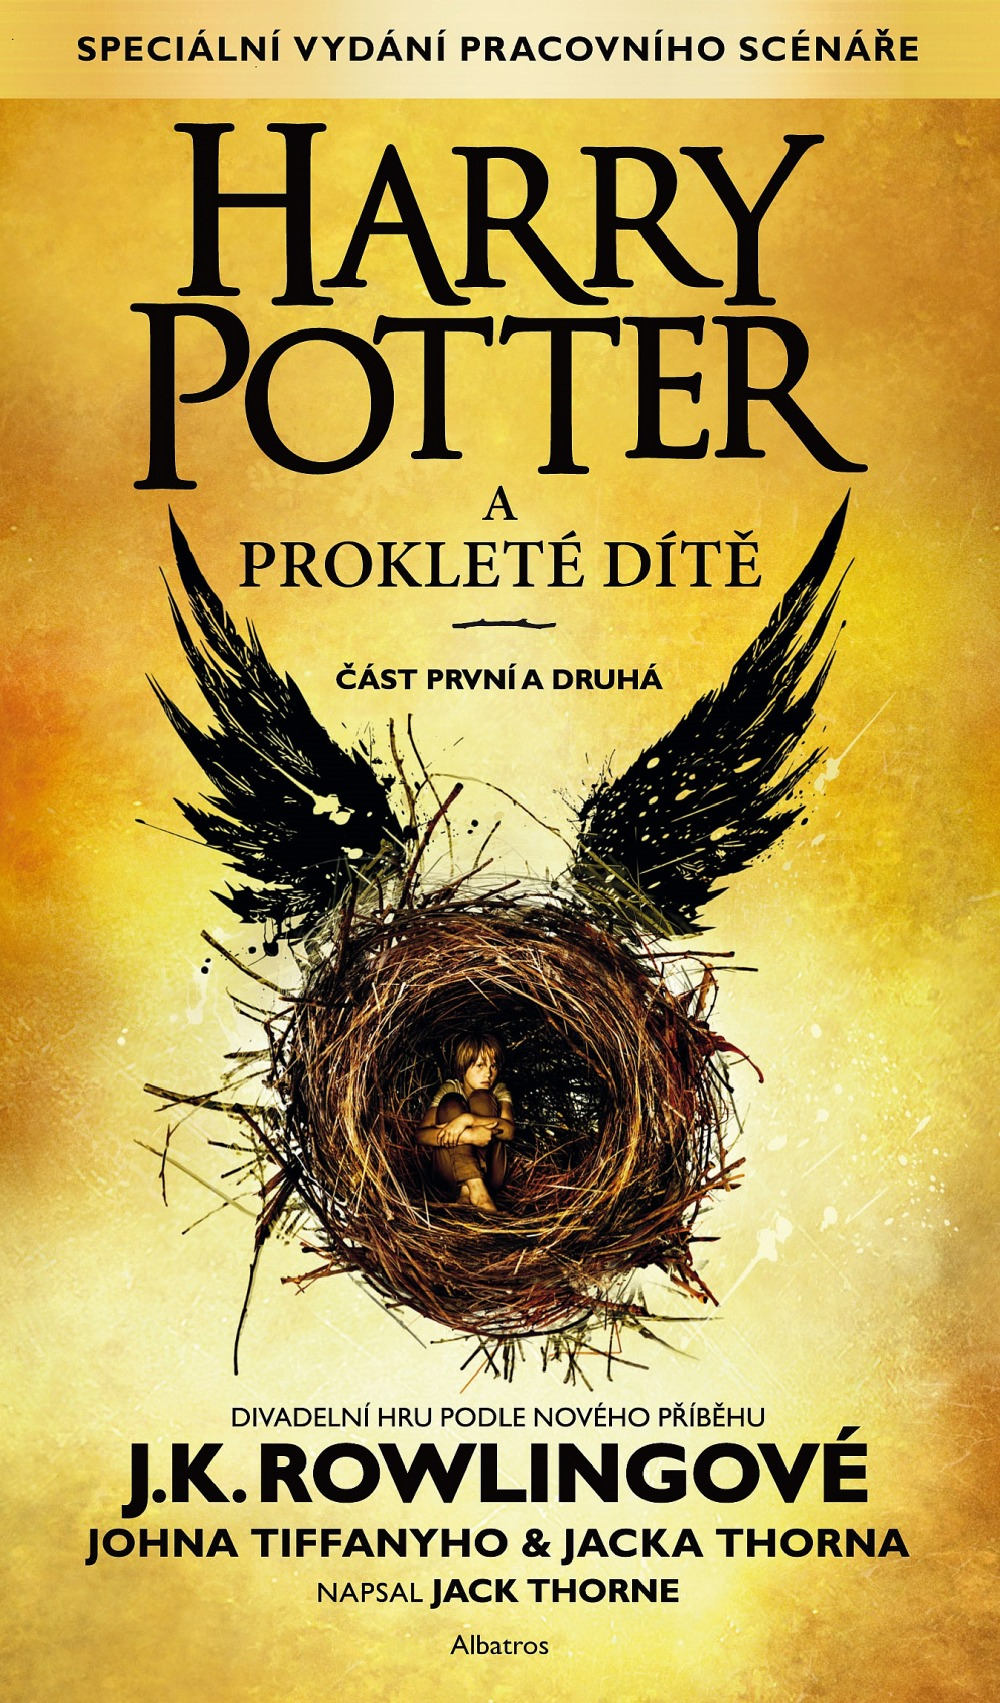 http://www.databazeknih.cz/images_books/30_/303983/big_harry-potter-a-proklete-dite-y3o-303983.jpg